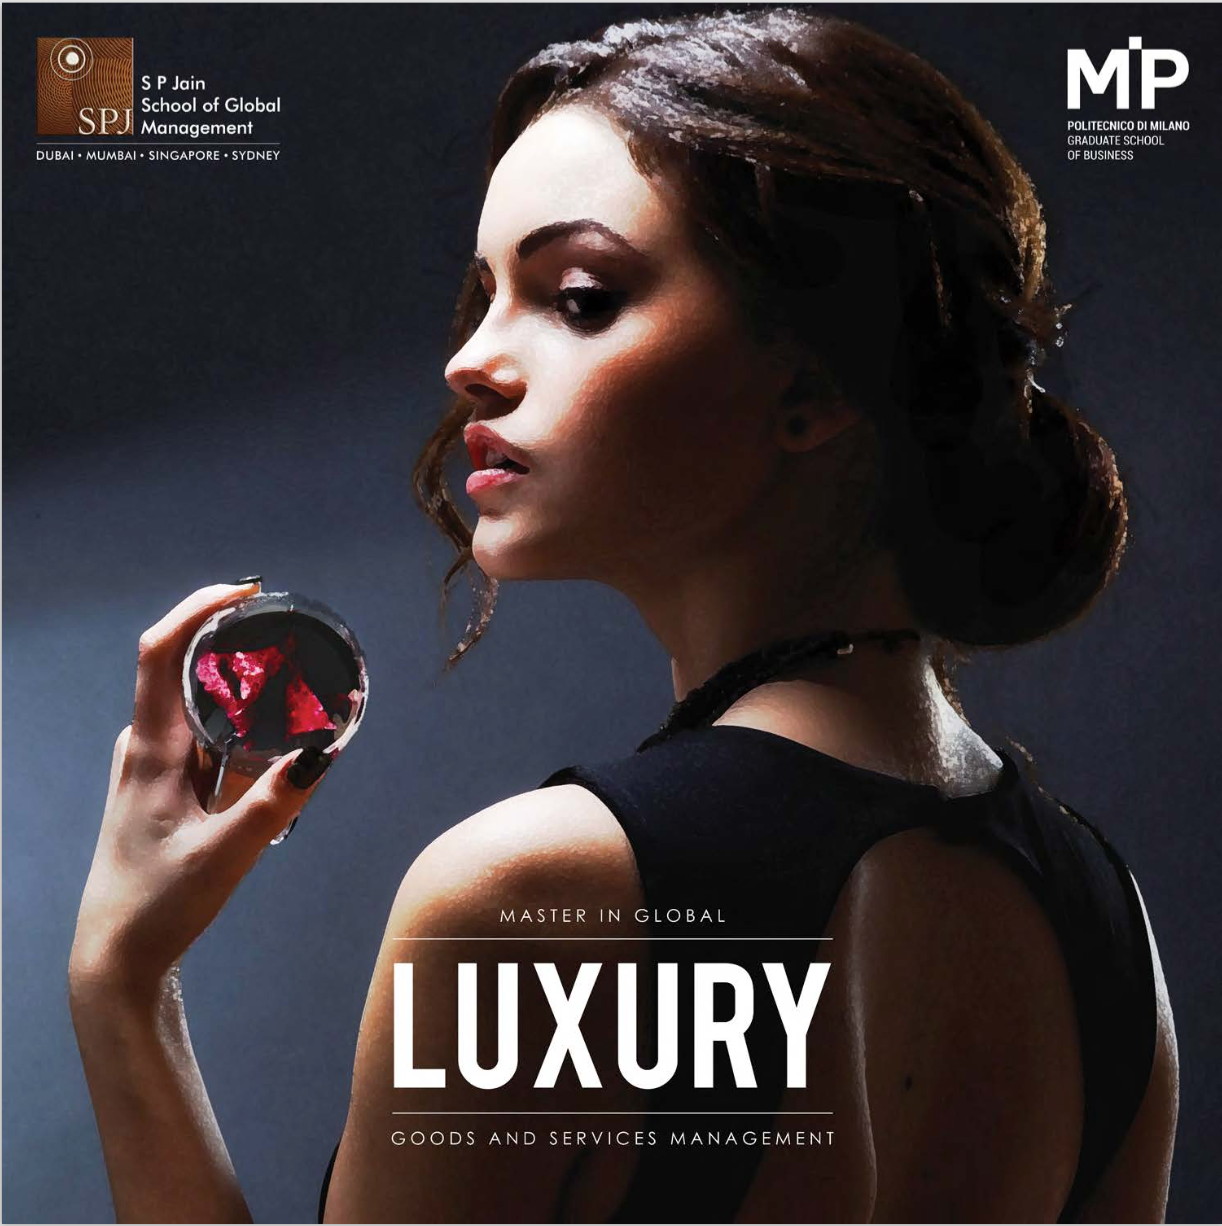 Luxury-Management-brochure-front-page.png